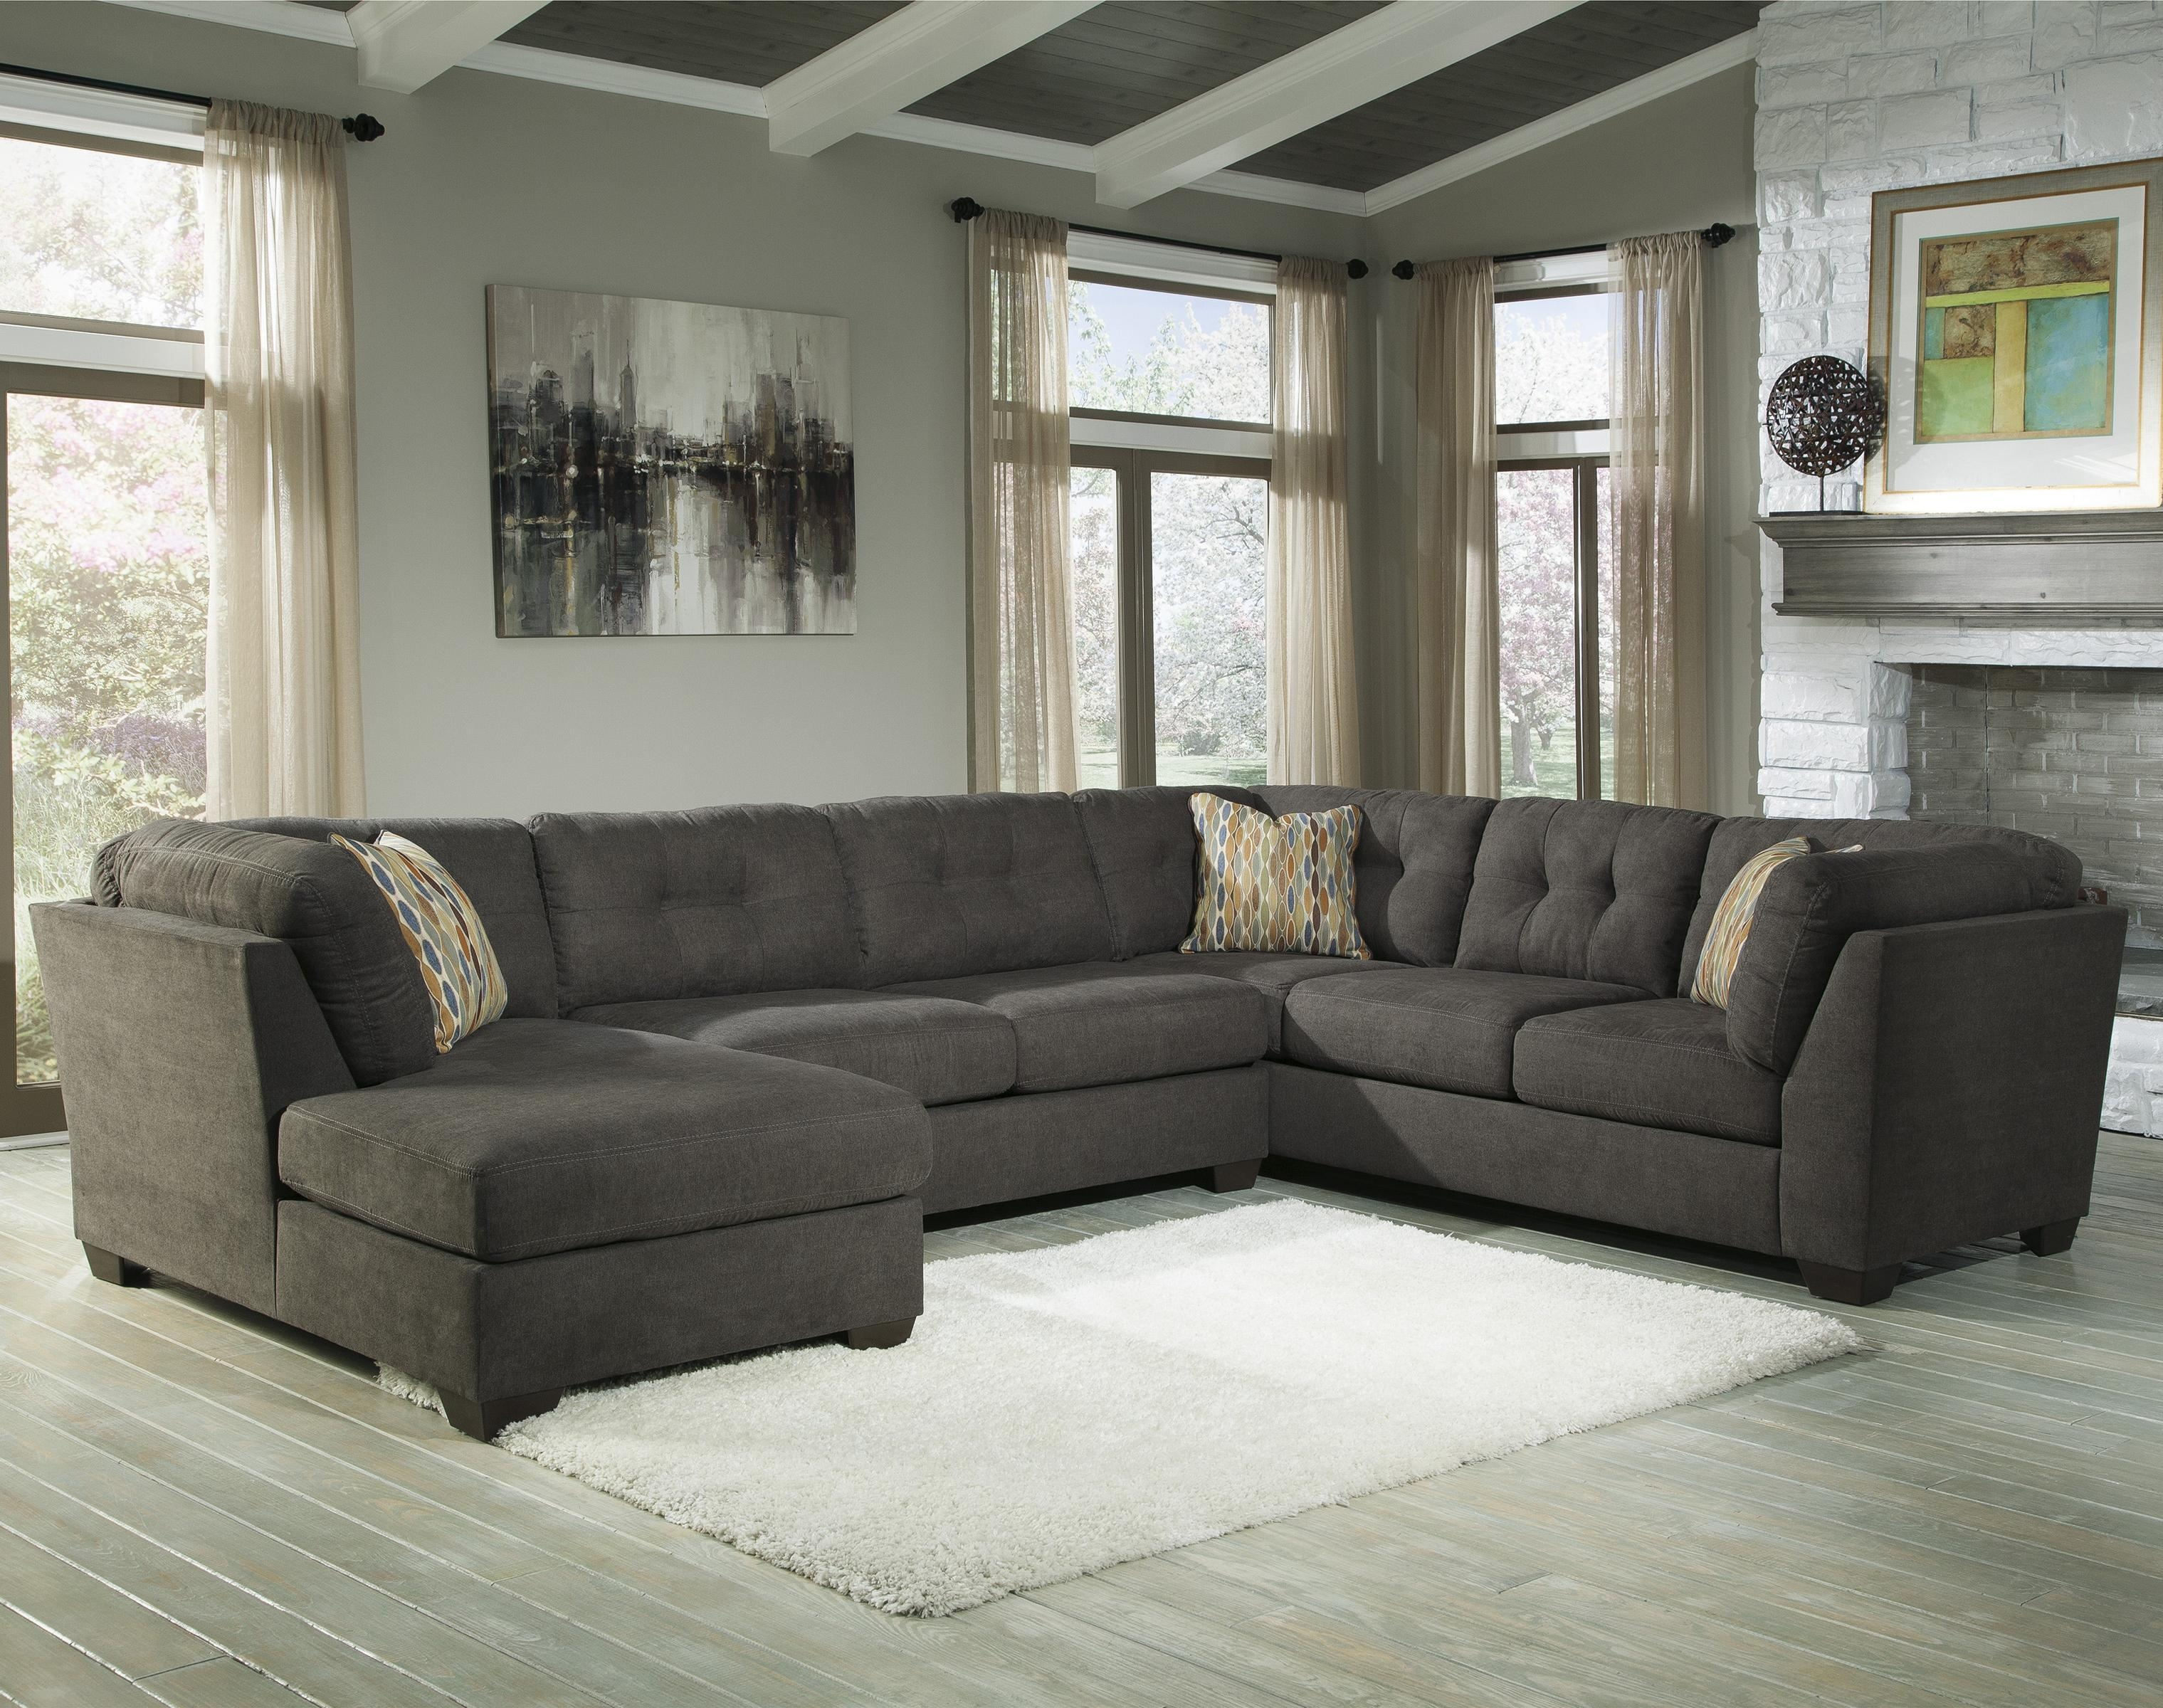 Sectional Sleeper Sofa Extraordinary Home Design Pertaining To 3 Piece Sectional Sleeper Sofa (Image 13 of 15)